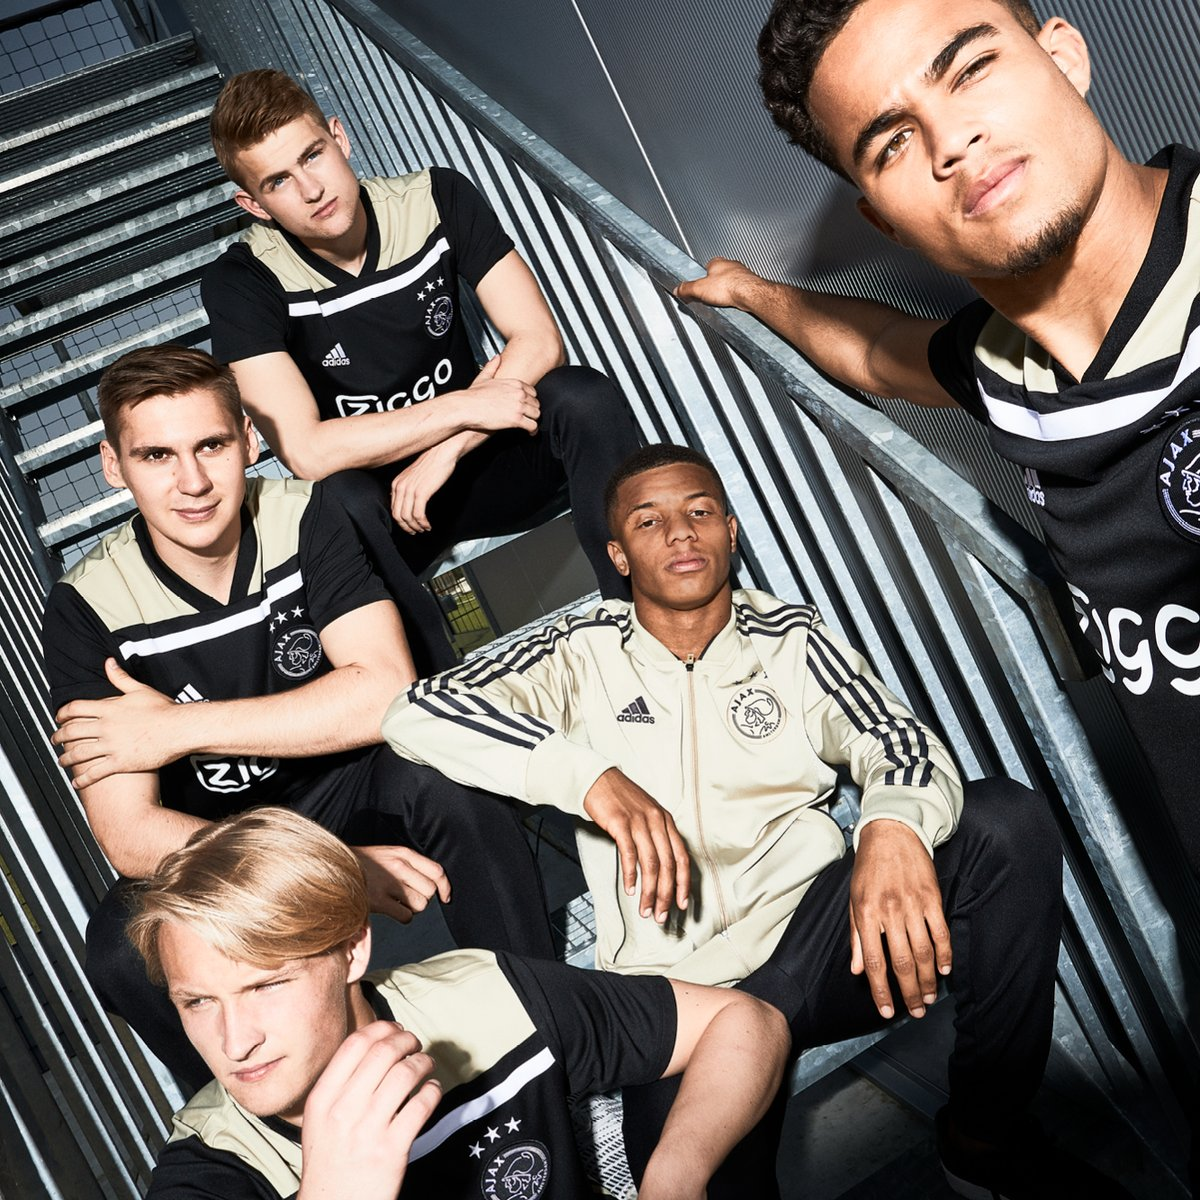 ajax-18-19-away-kit%2B%25282%2529.jpg